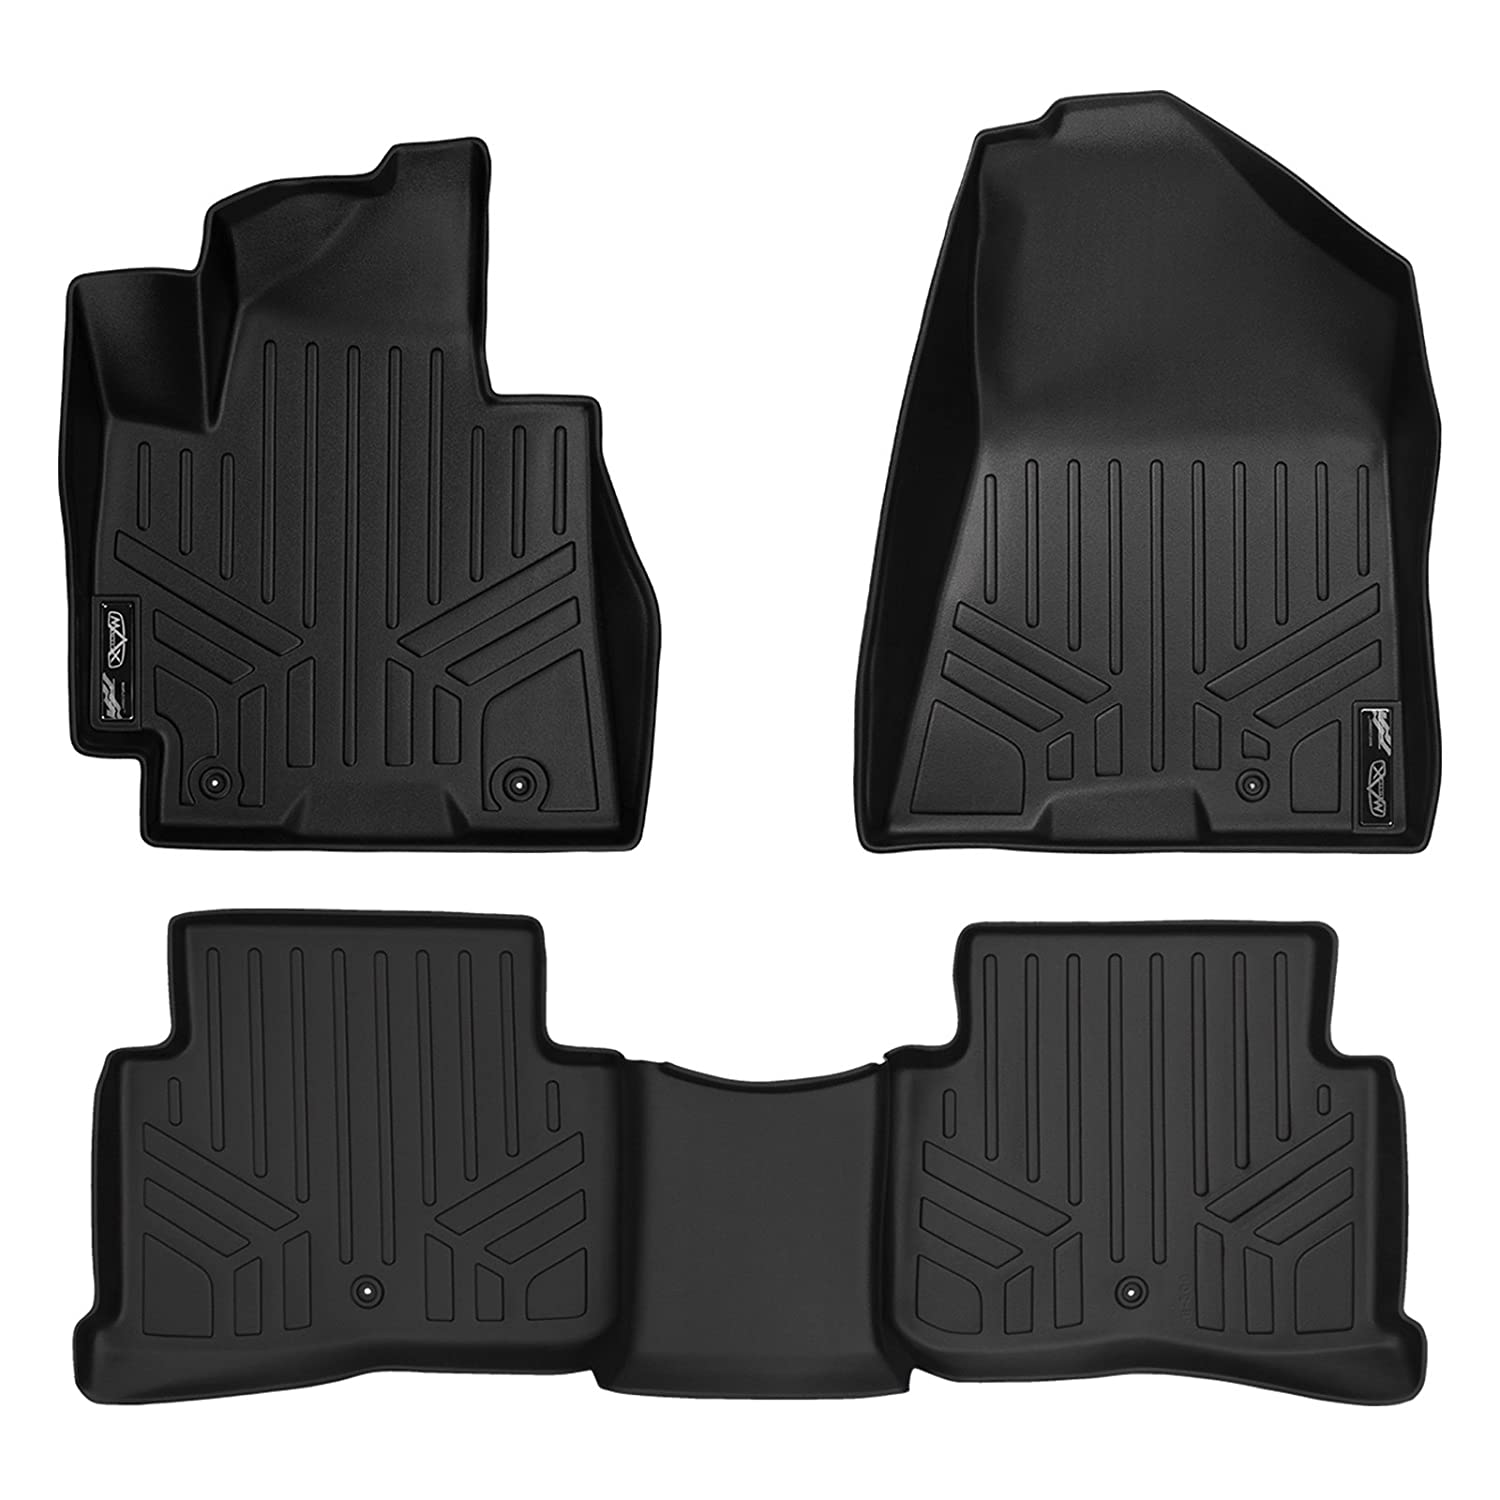 all weather front present amp rear mats awesomeamazinggreat specifics product great item bmw floor